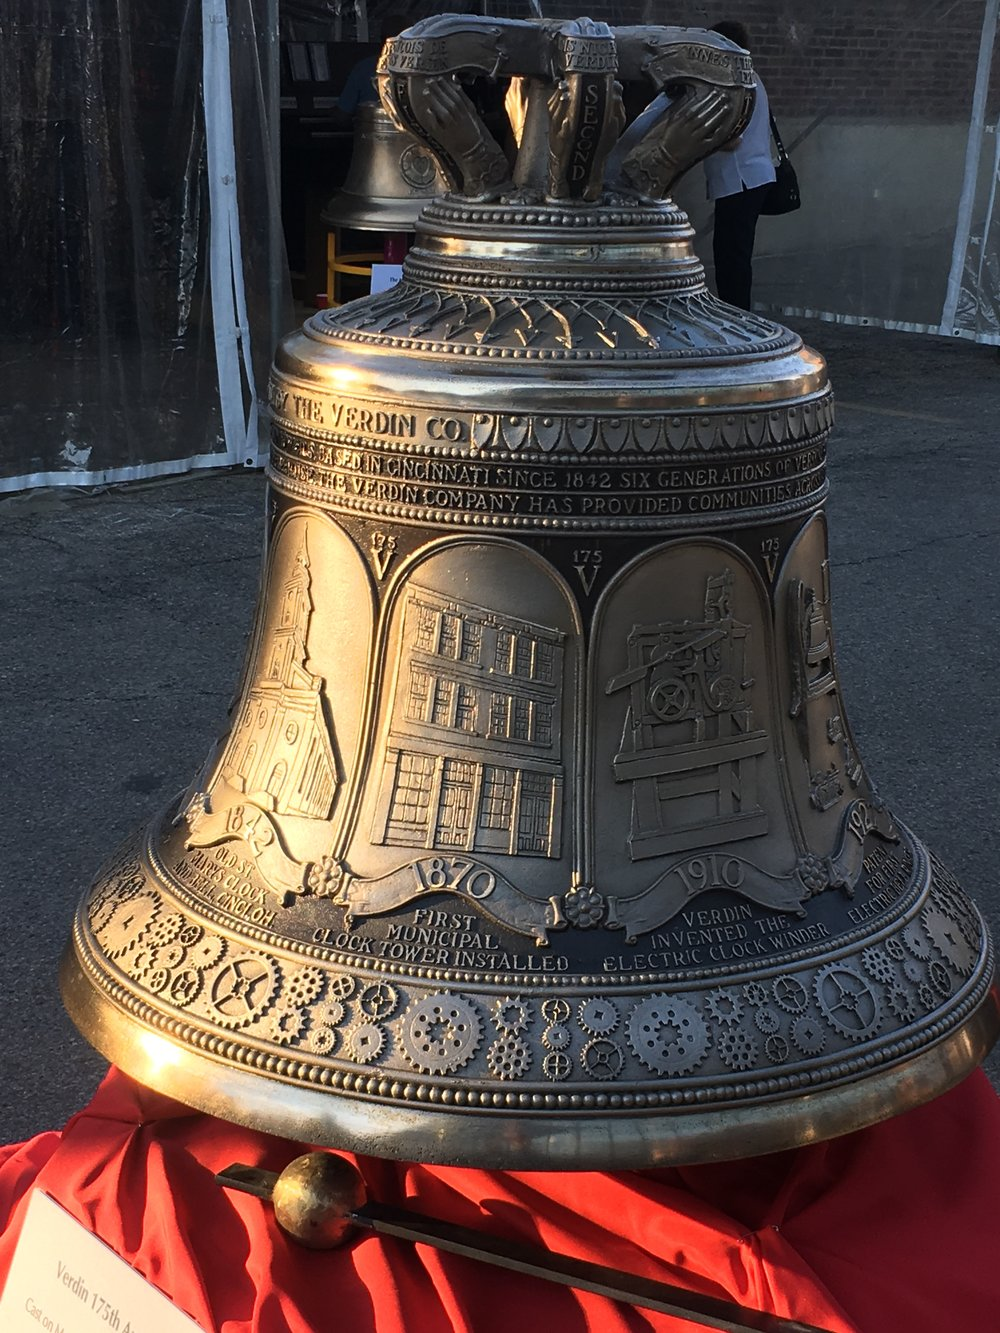 The impressive 175th anniversary bell designed and cast by Verdin.